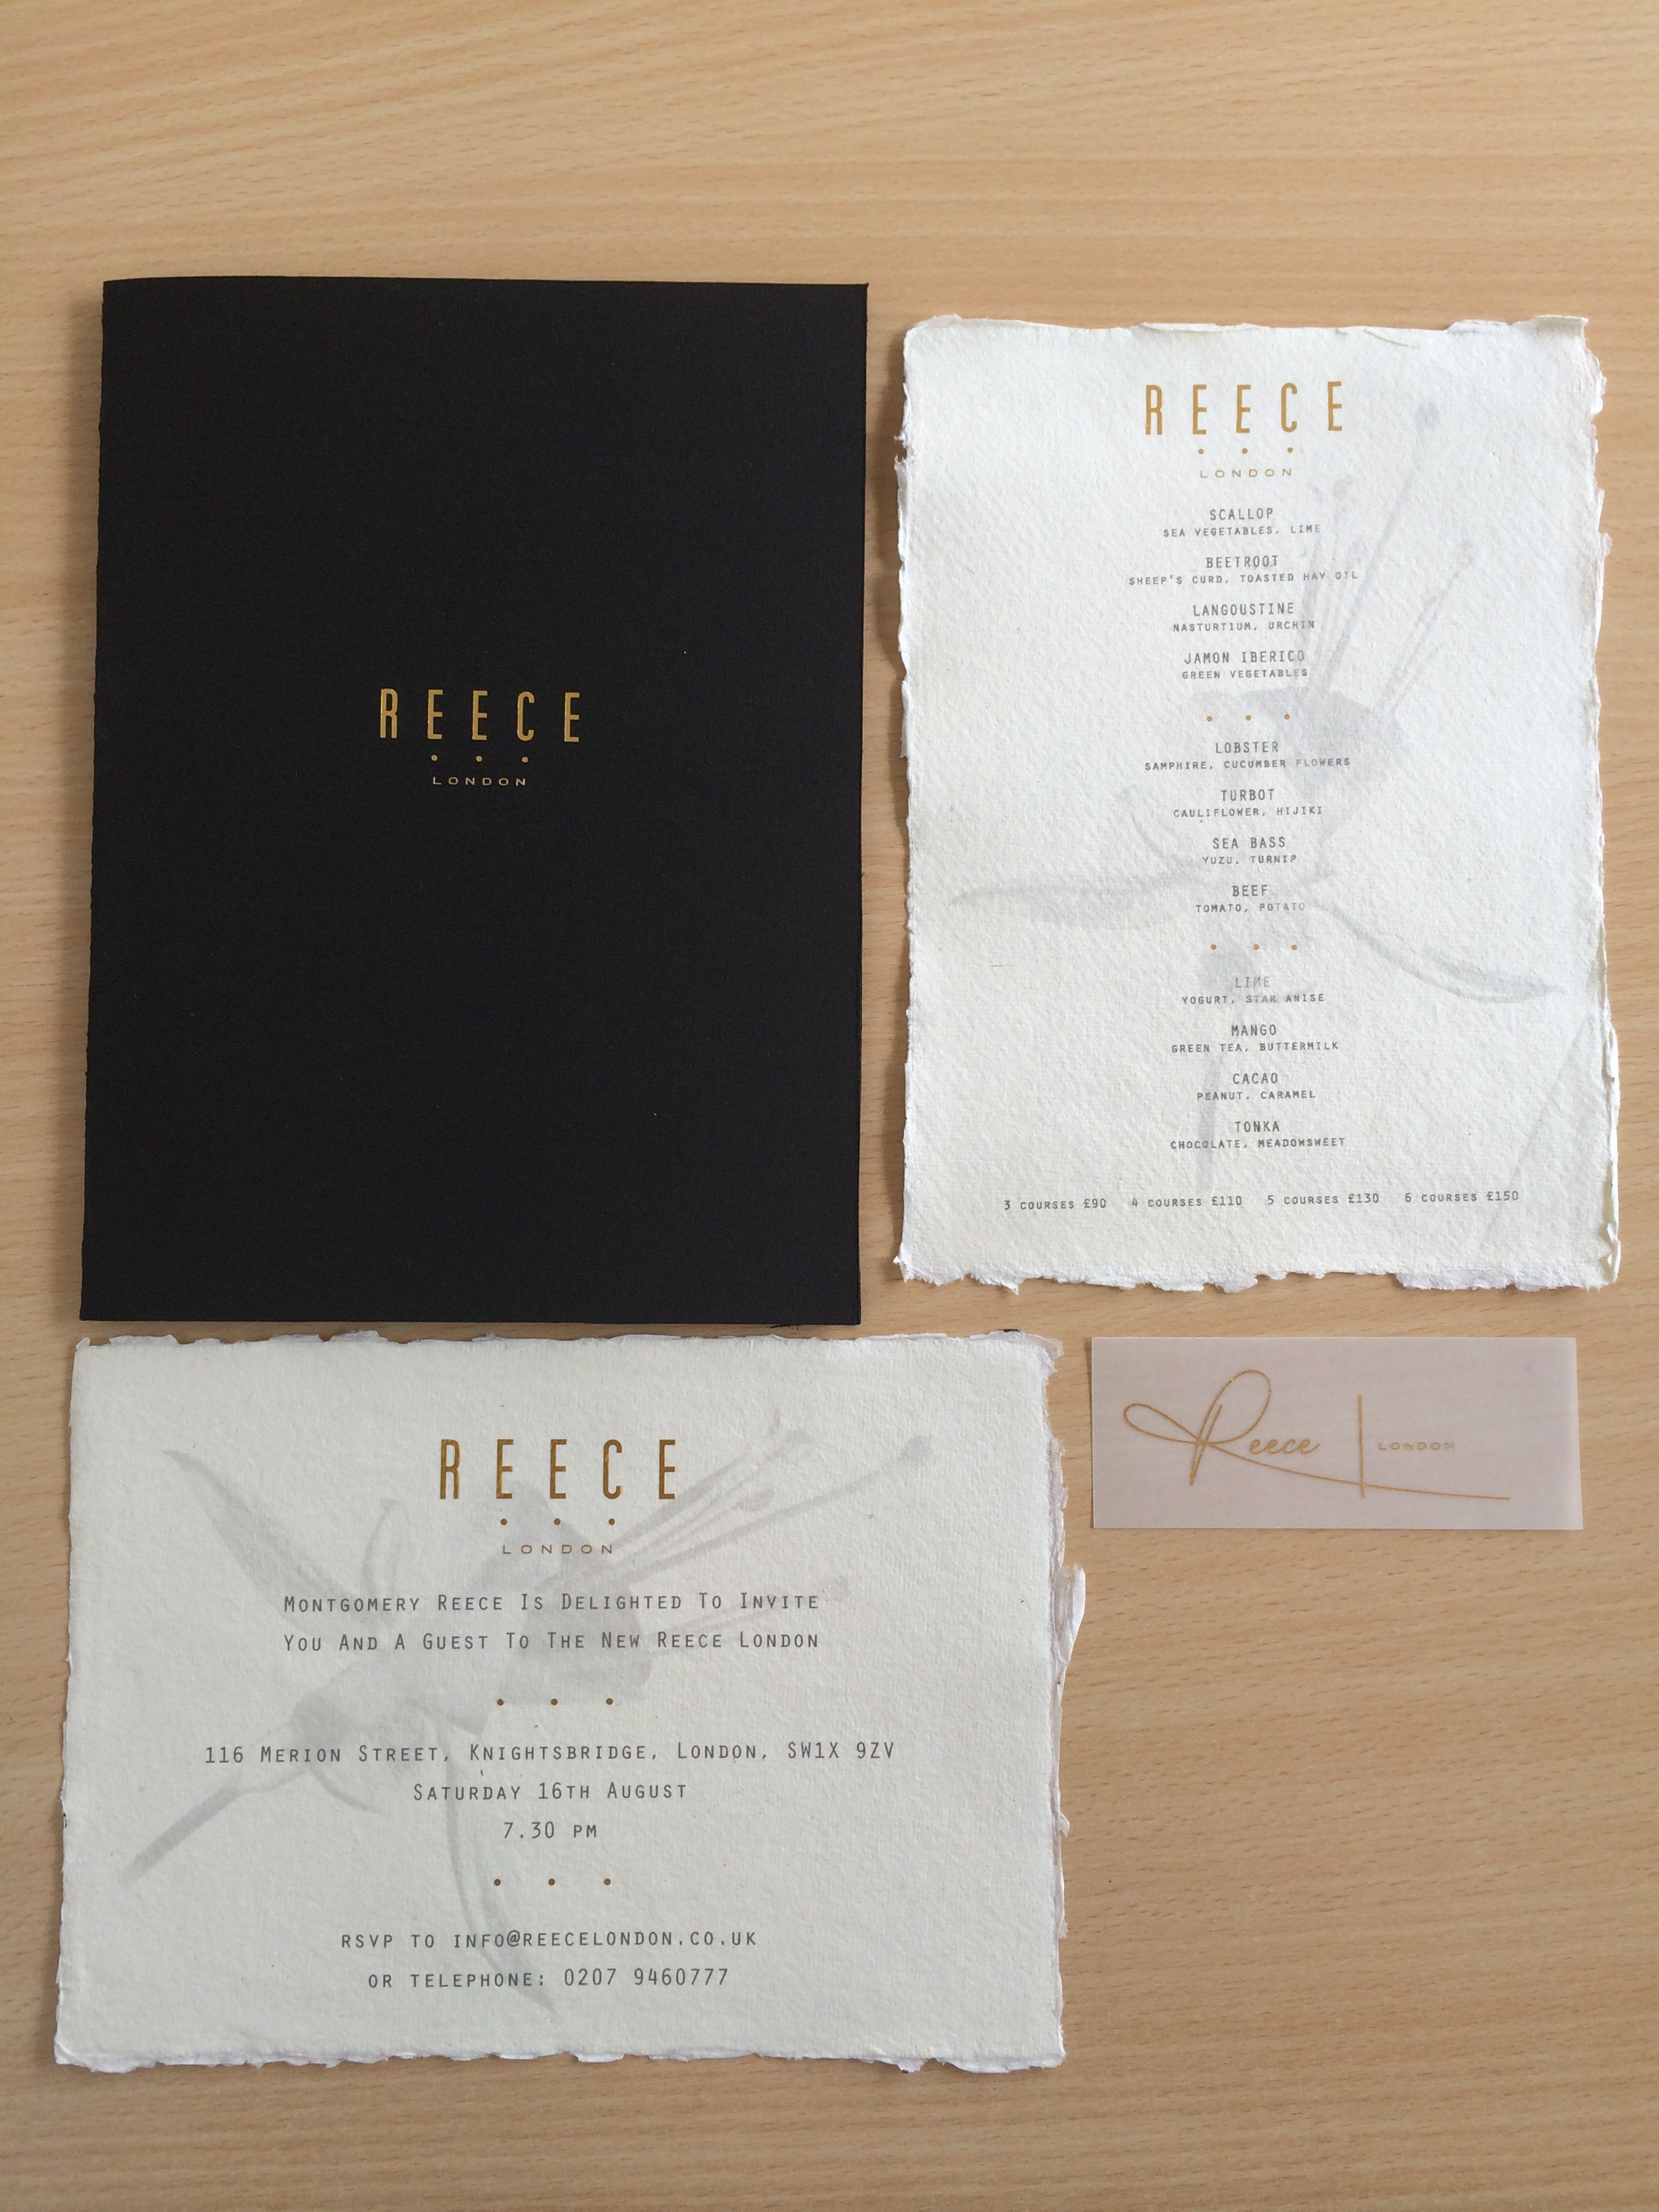 High End Restaurant Menu/Invites